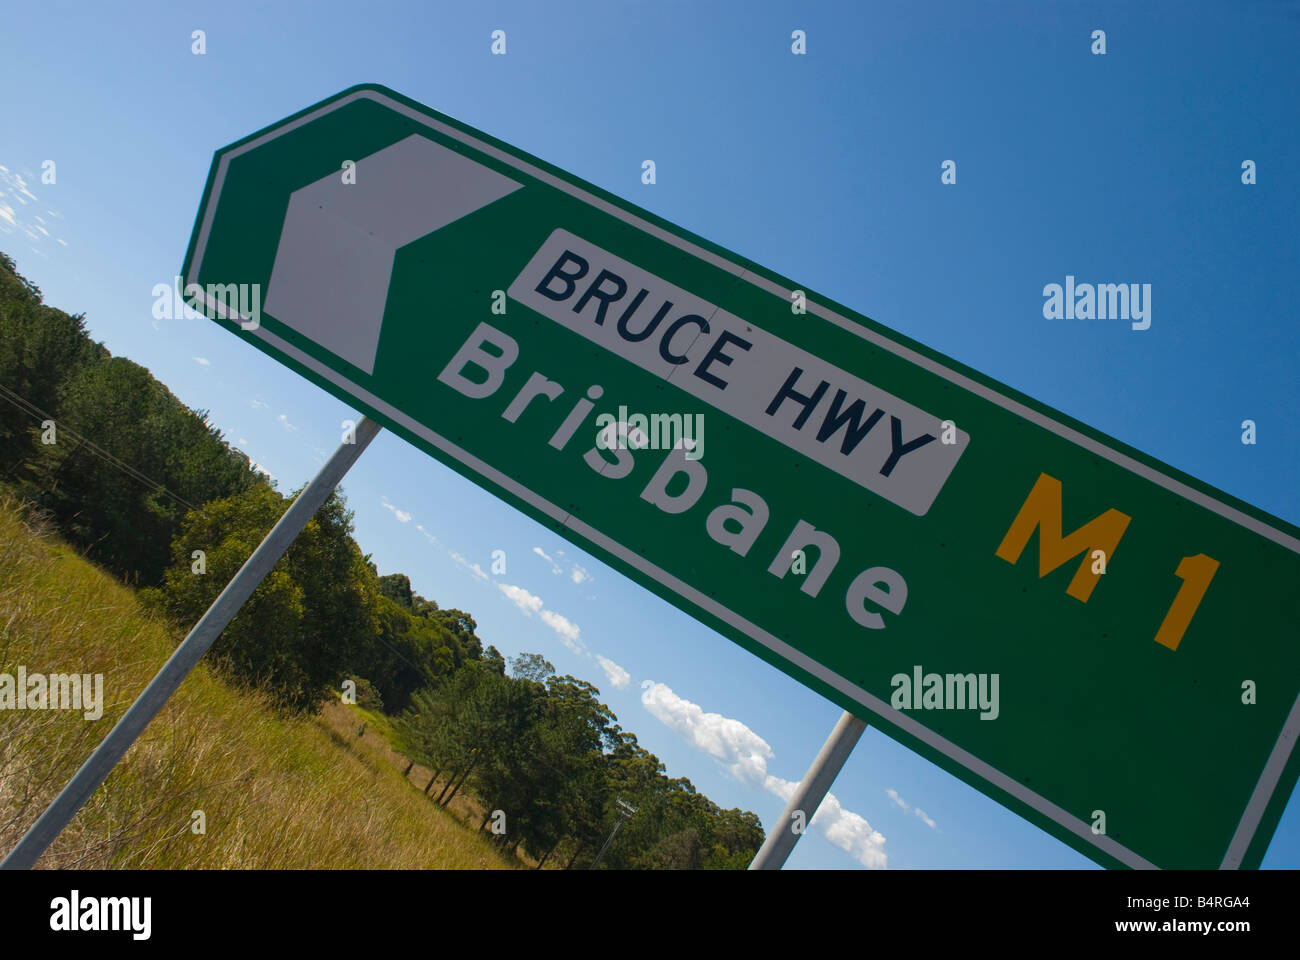 Highway sign pointing to the city of Brisbane on the Bruce Highway in Queensland - Stock Image